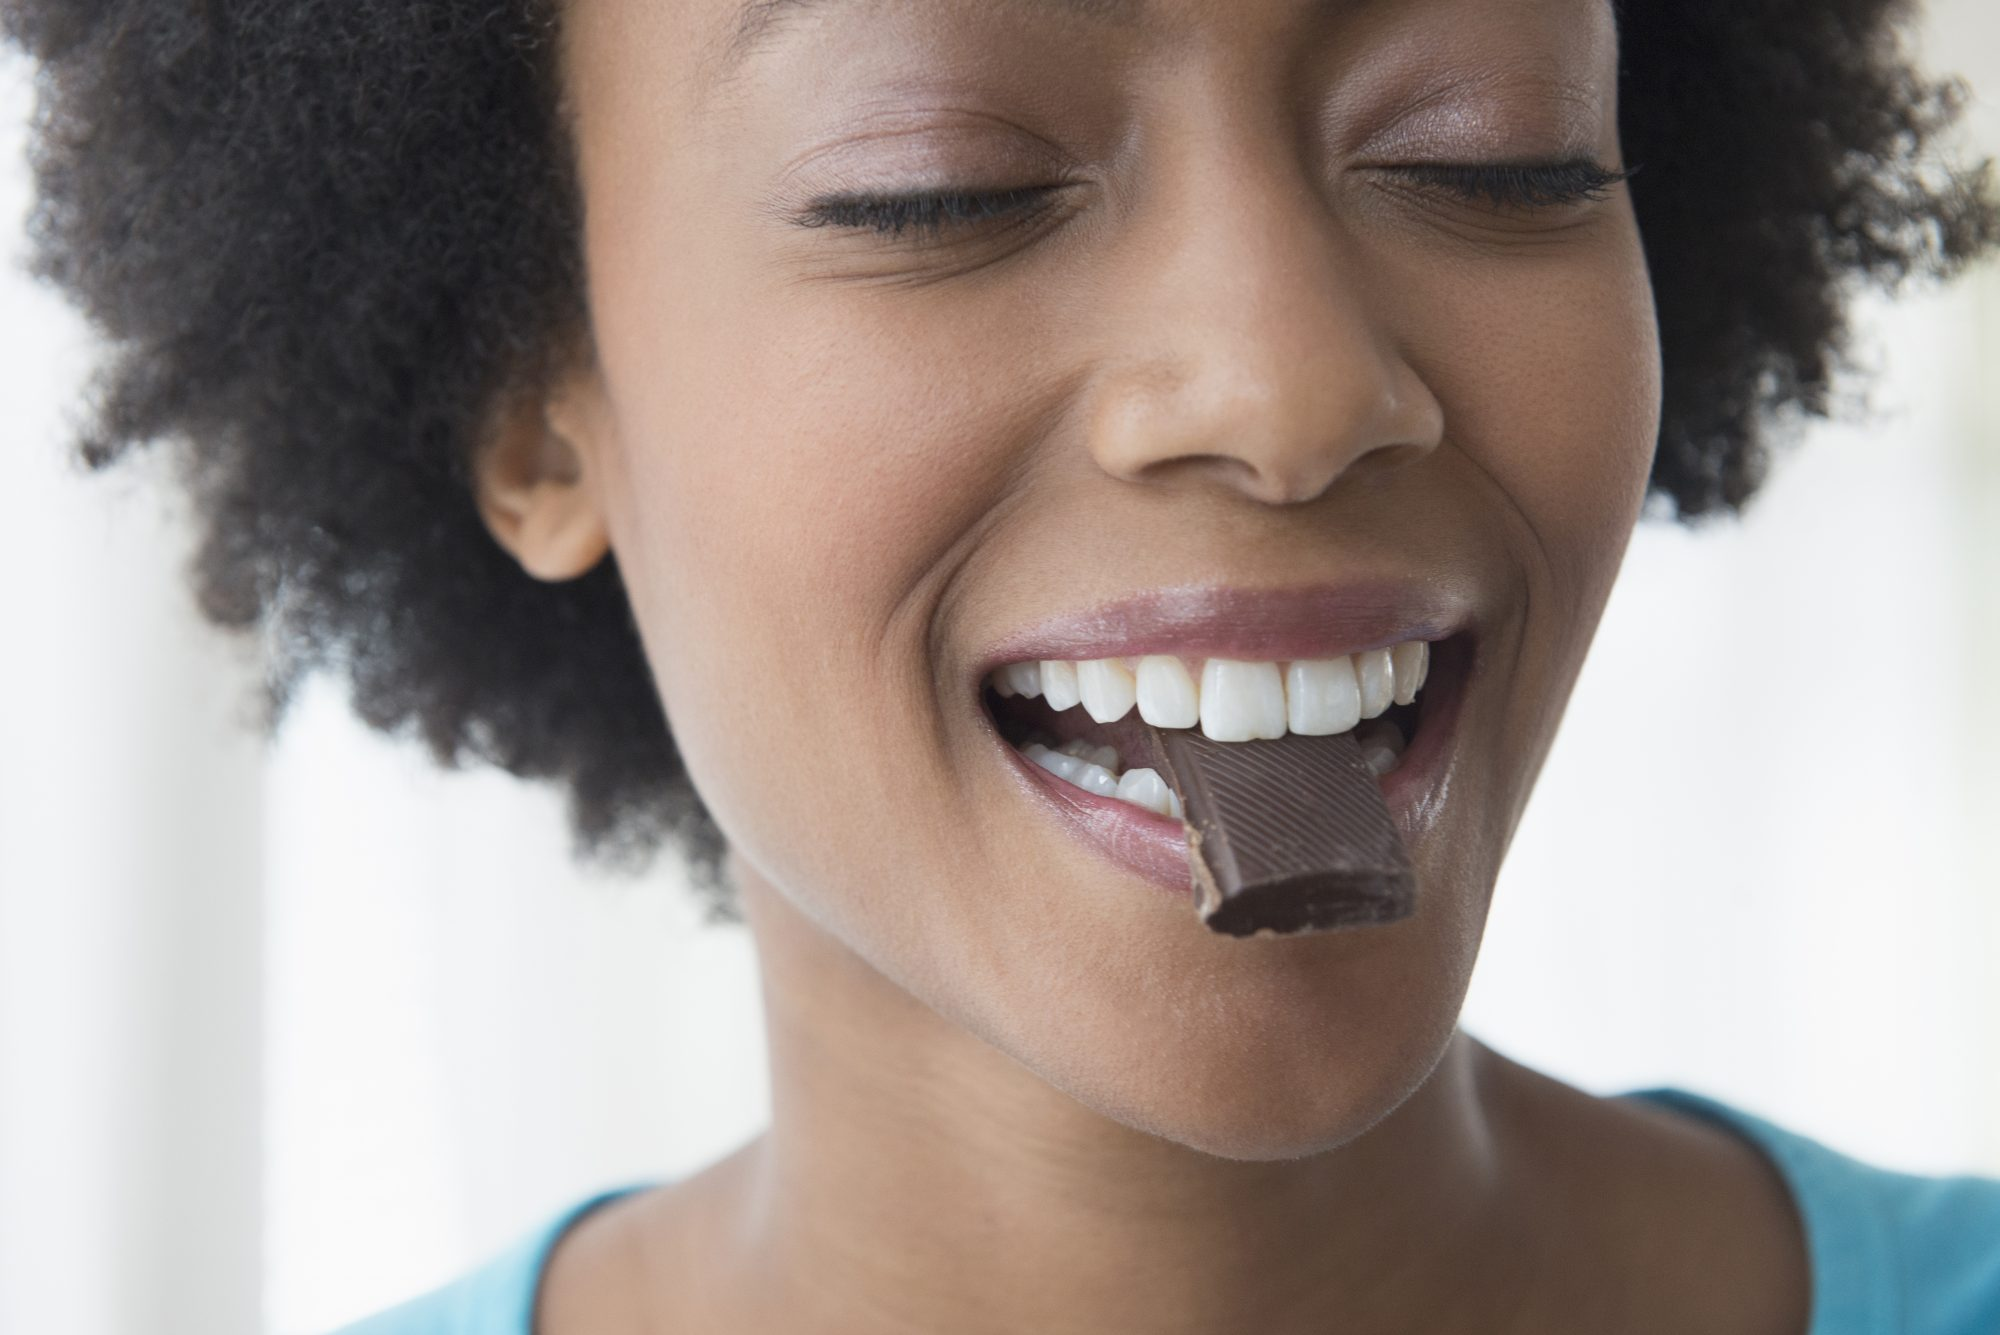 Craving Chocolate to Ease PMS? Blame Society, Not Biology